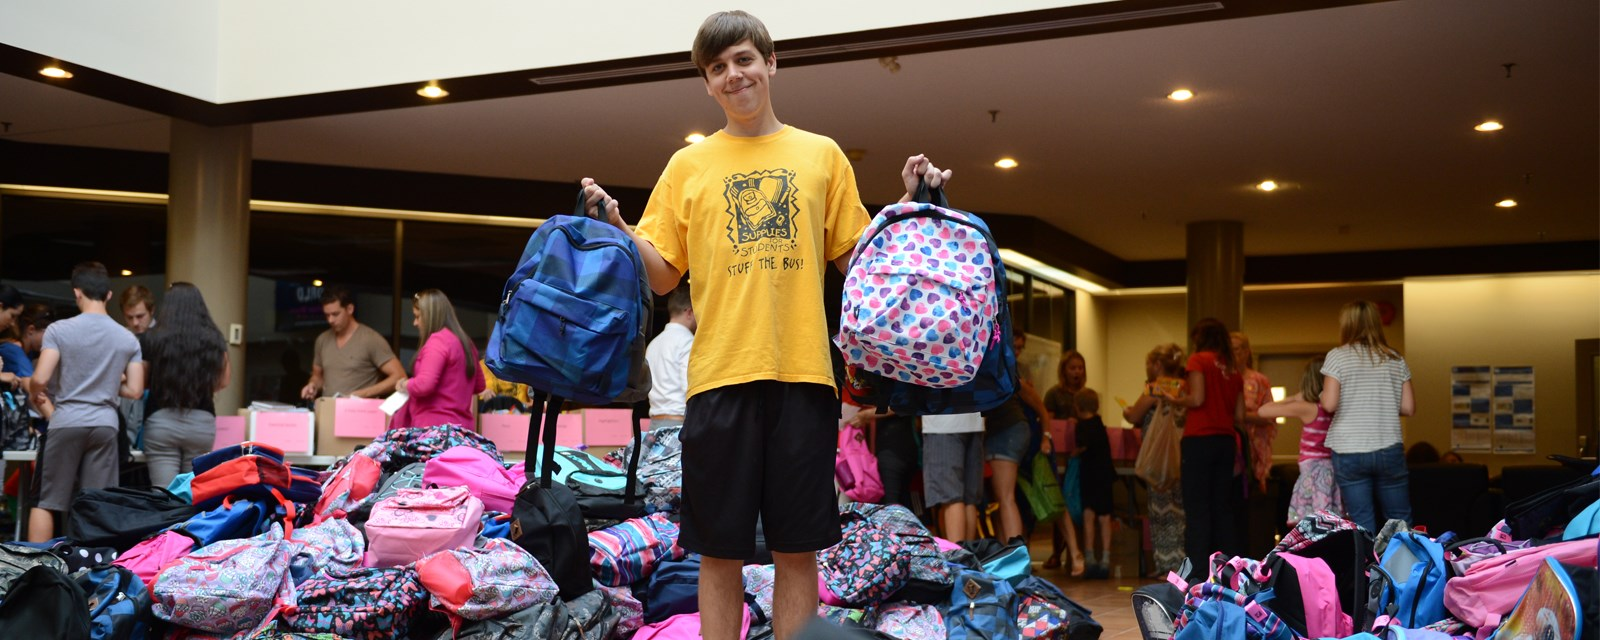 A volunteer helps stuff backpacks for the Supplies for Students program